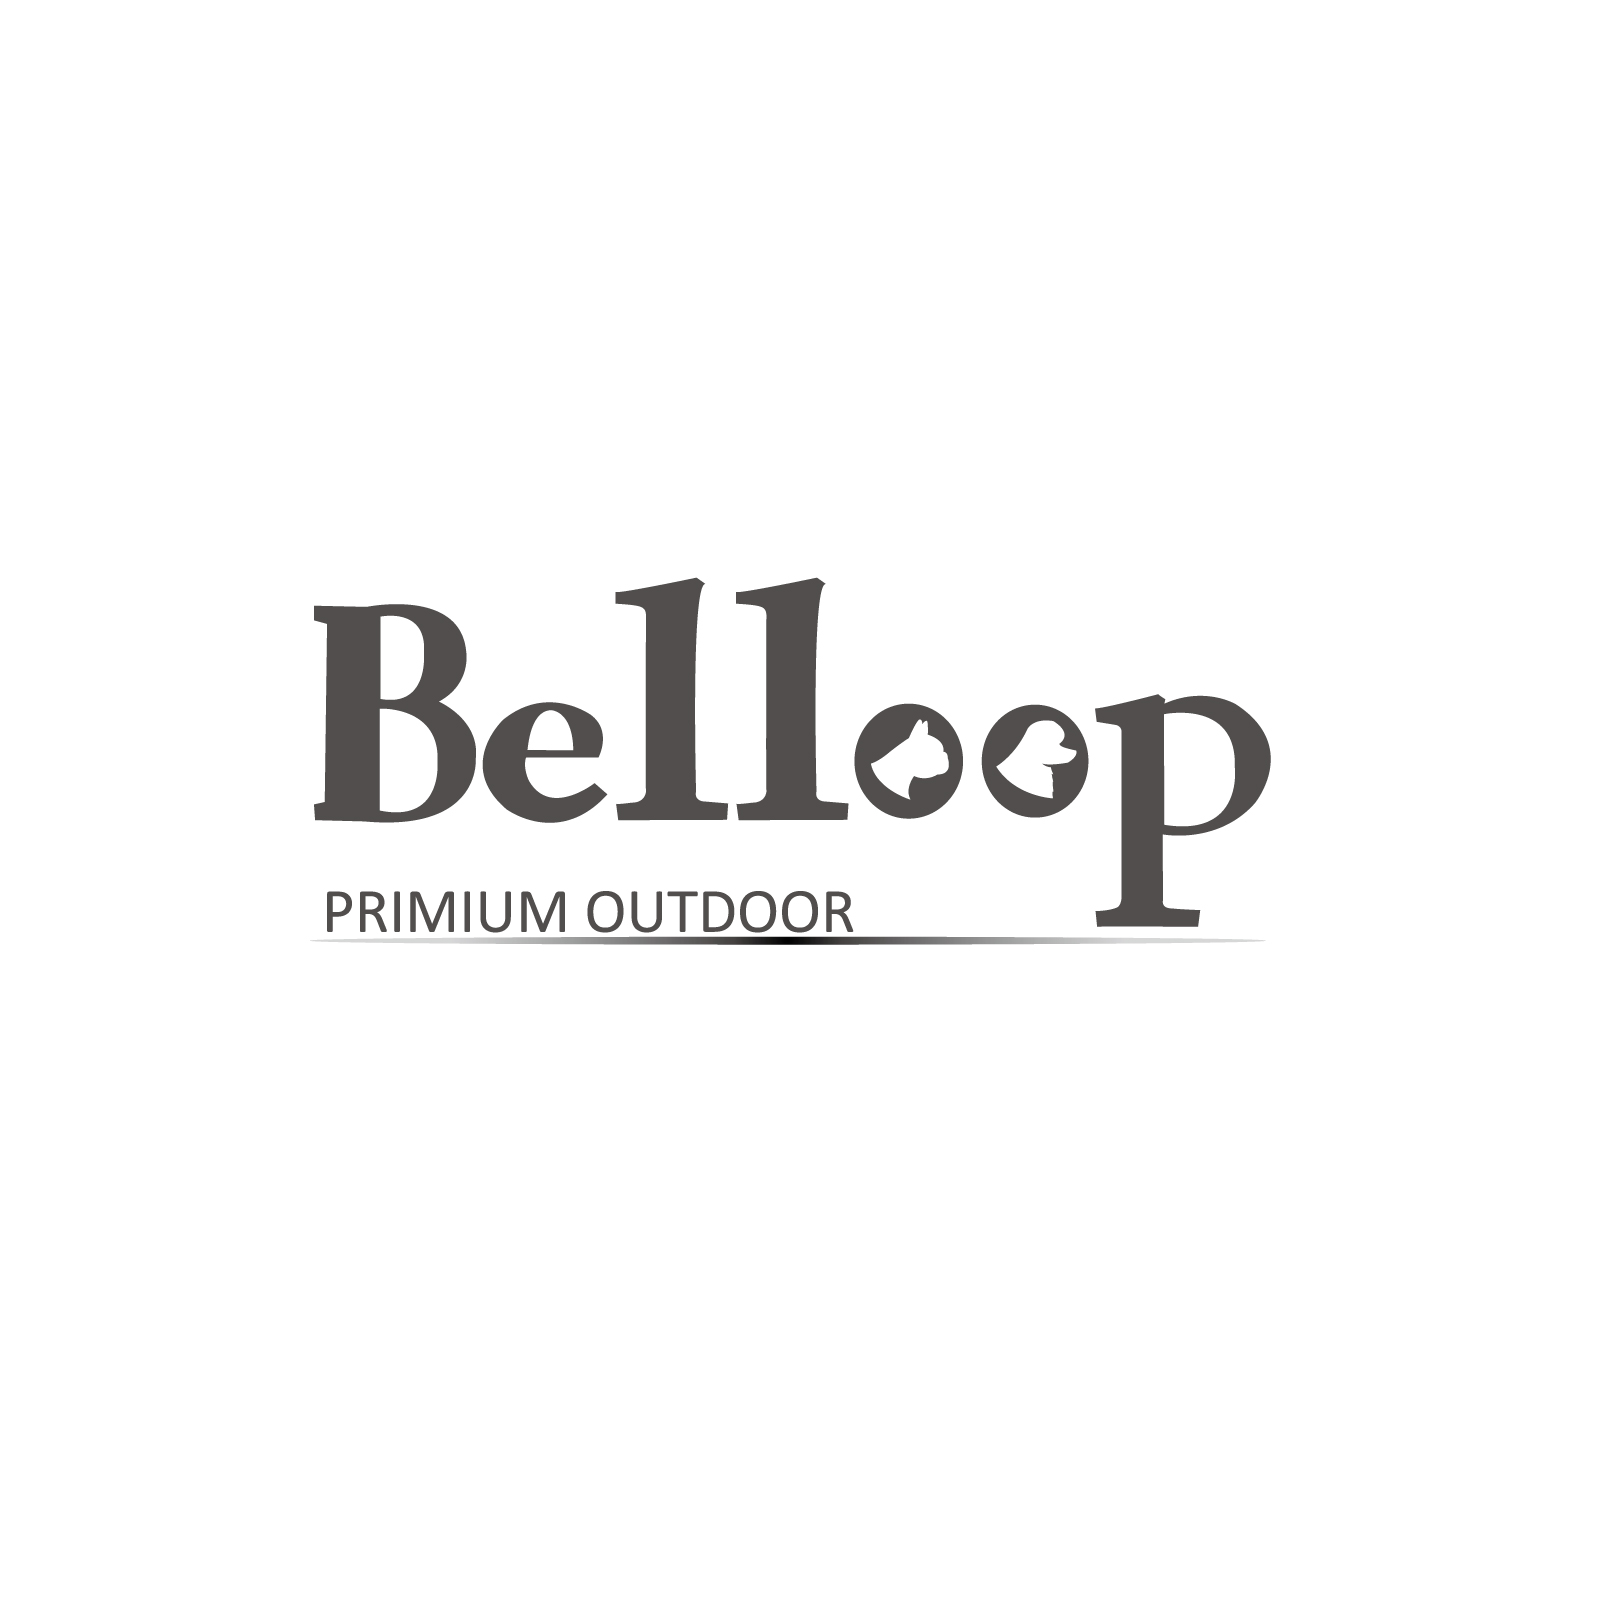 Belloop Timelinecompany